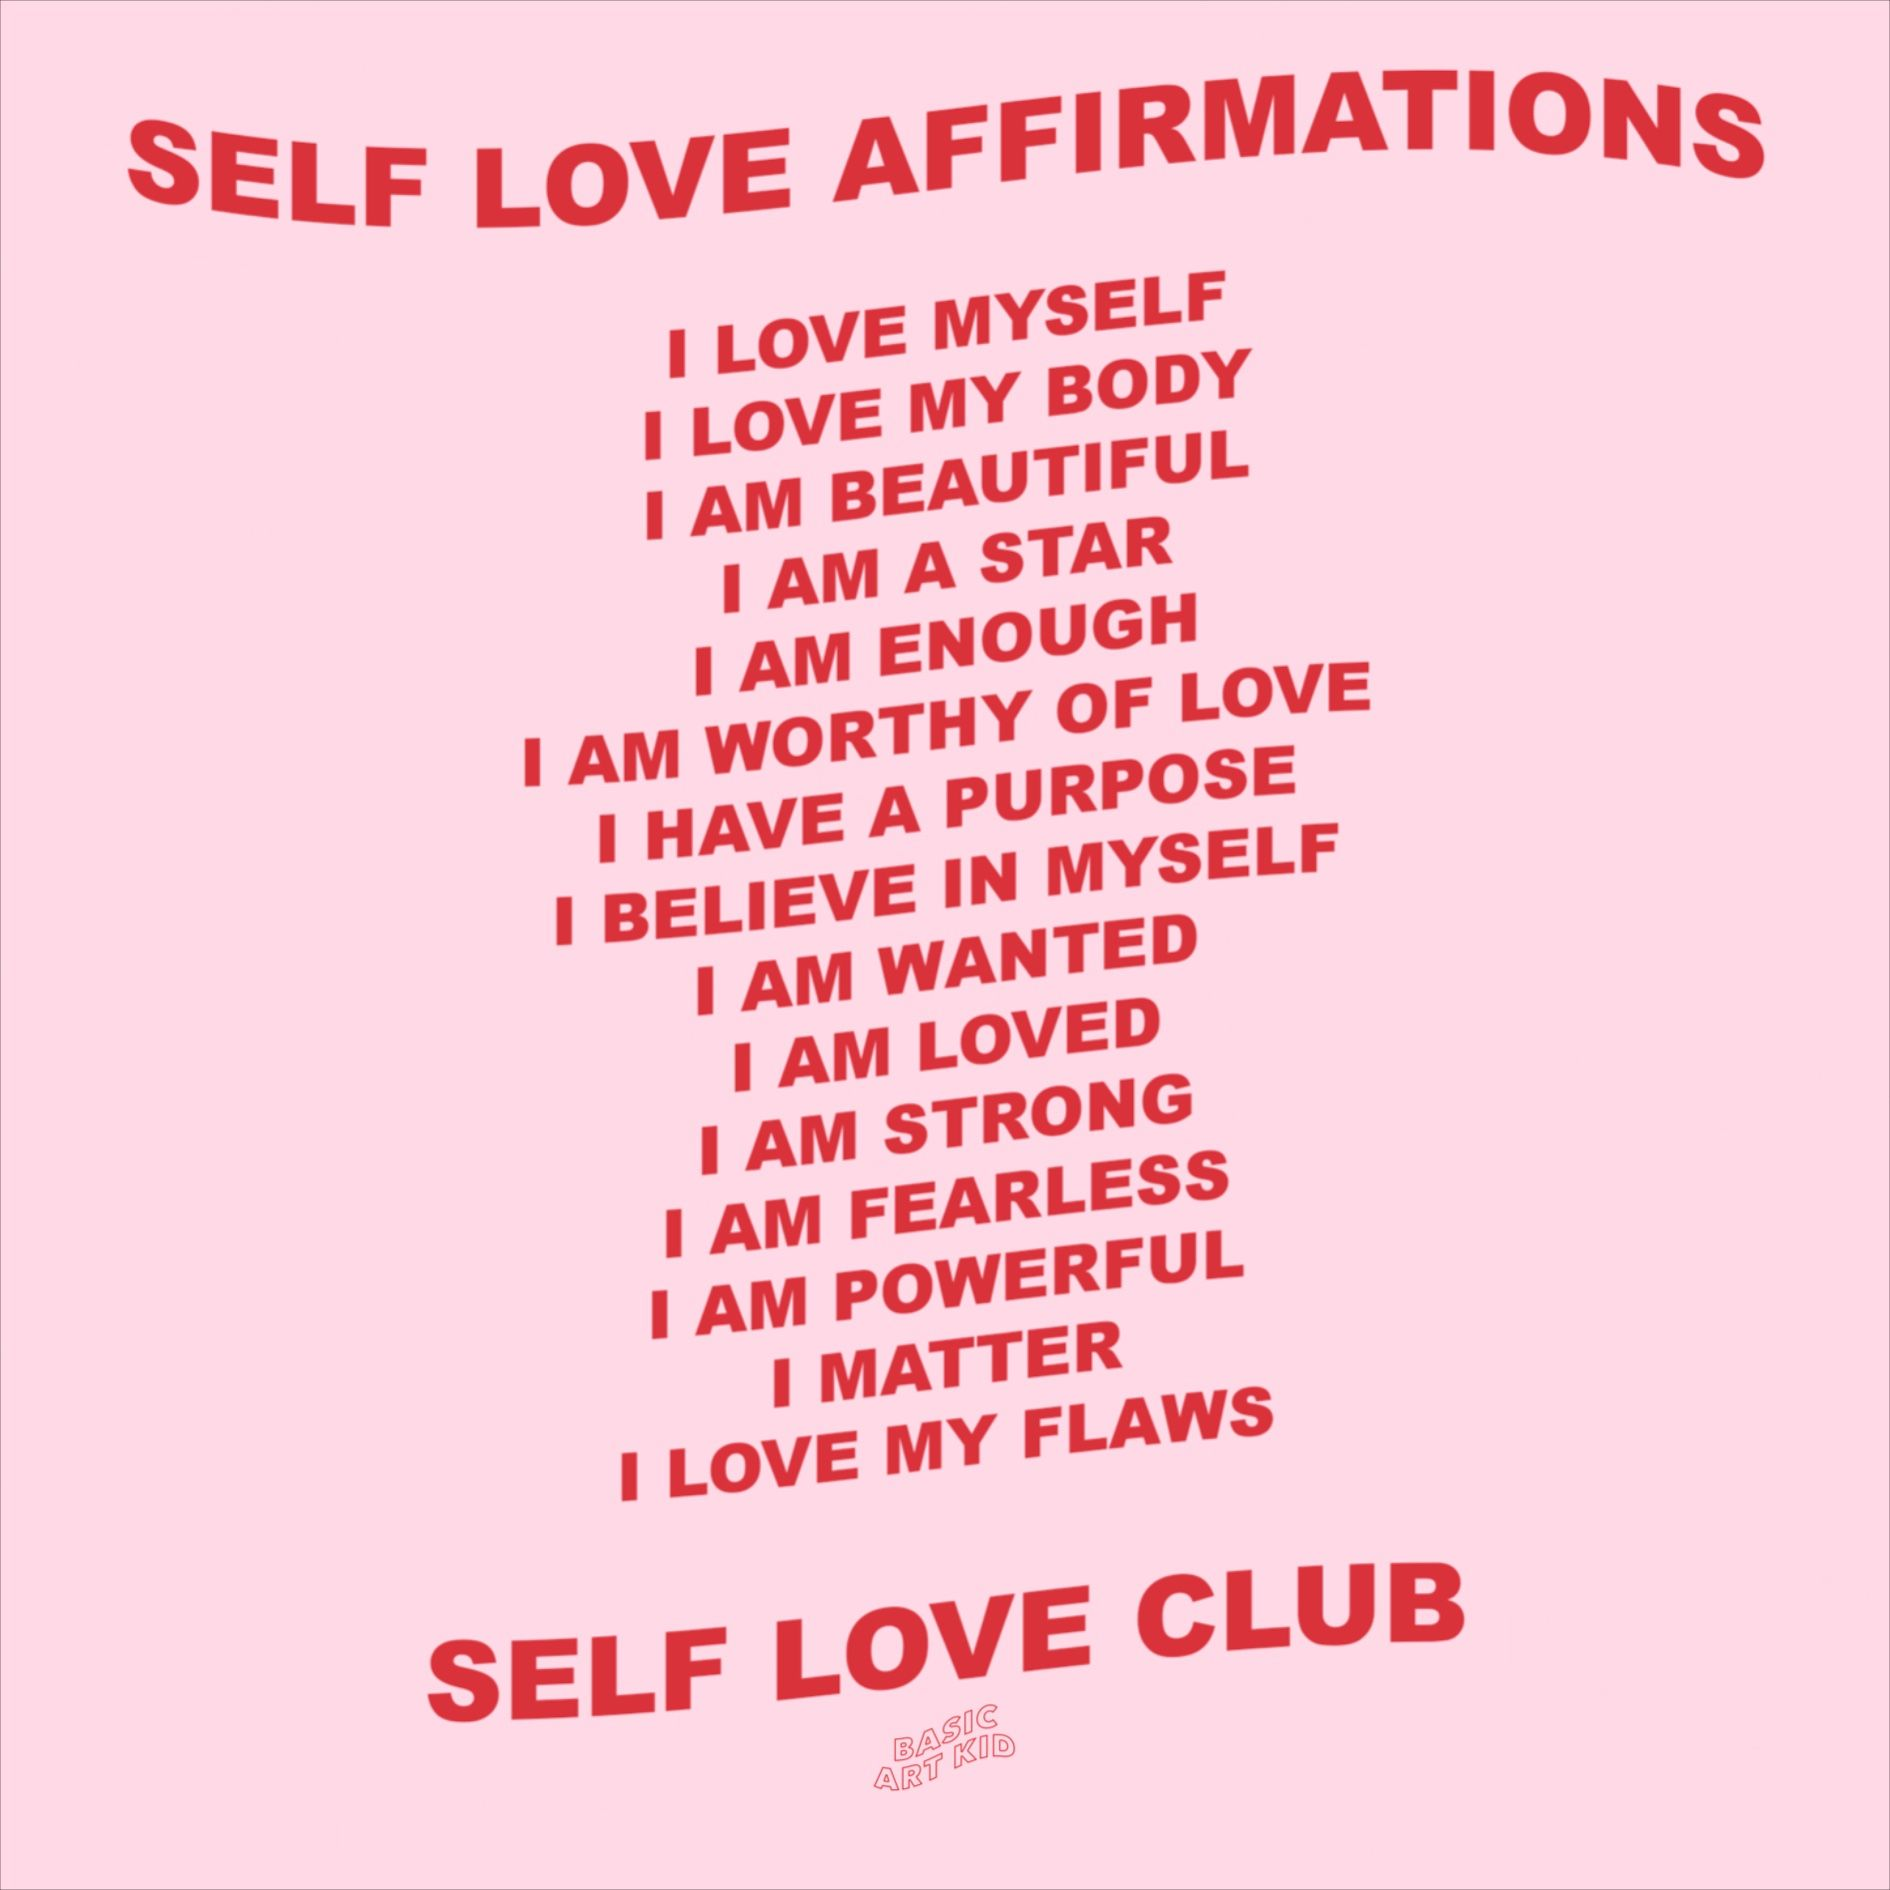 Self Love Affirmations Aesthetic Art Print 2 Colour